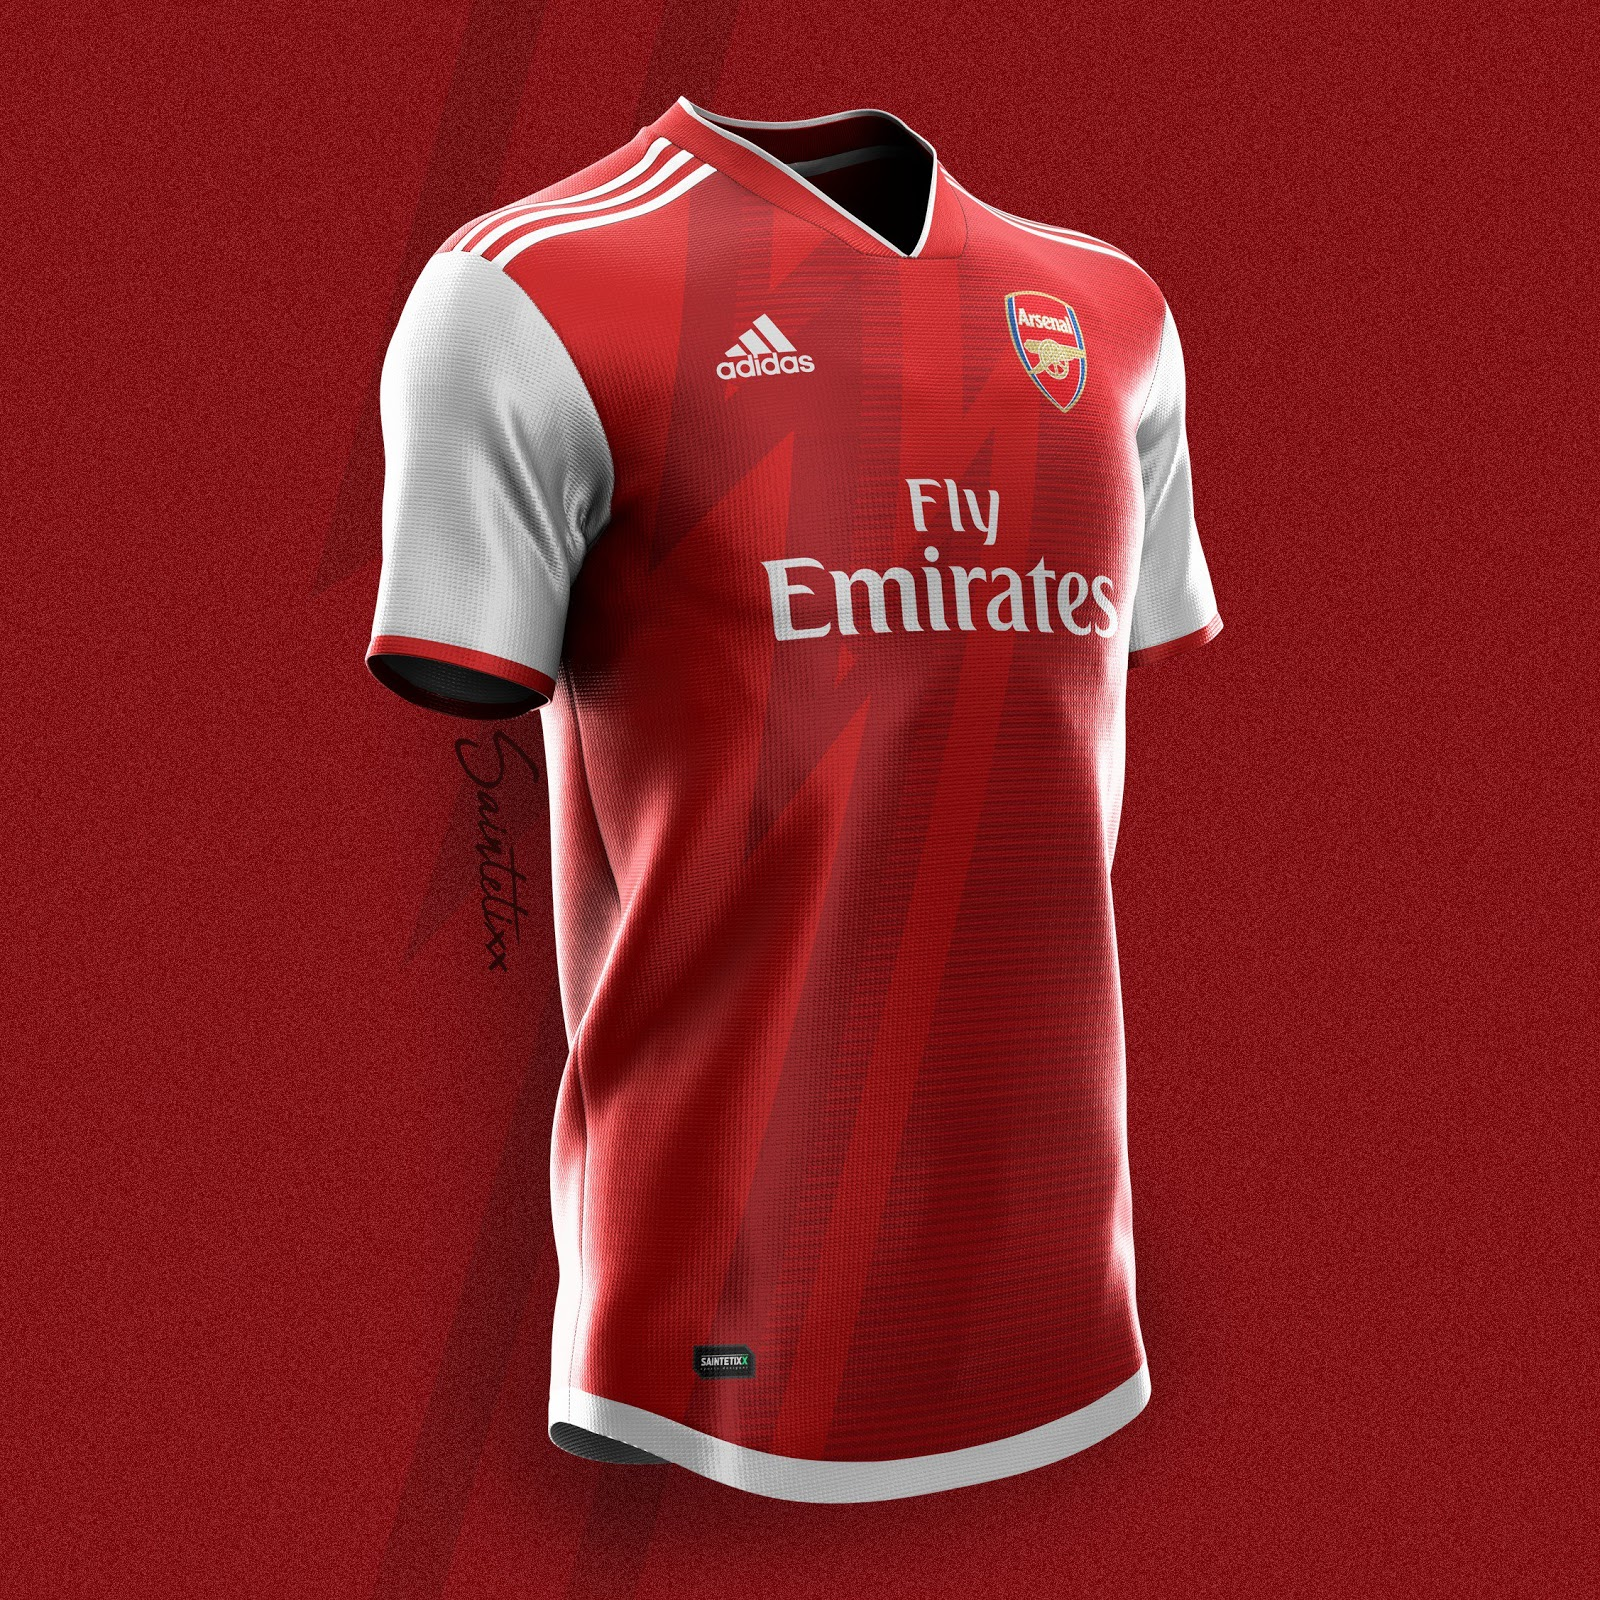 Adidas Arsenal 19-20 Home, Away & Third Kit Concepts by ...